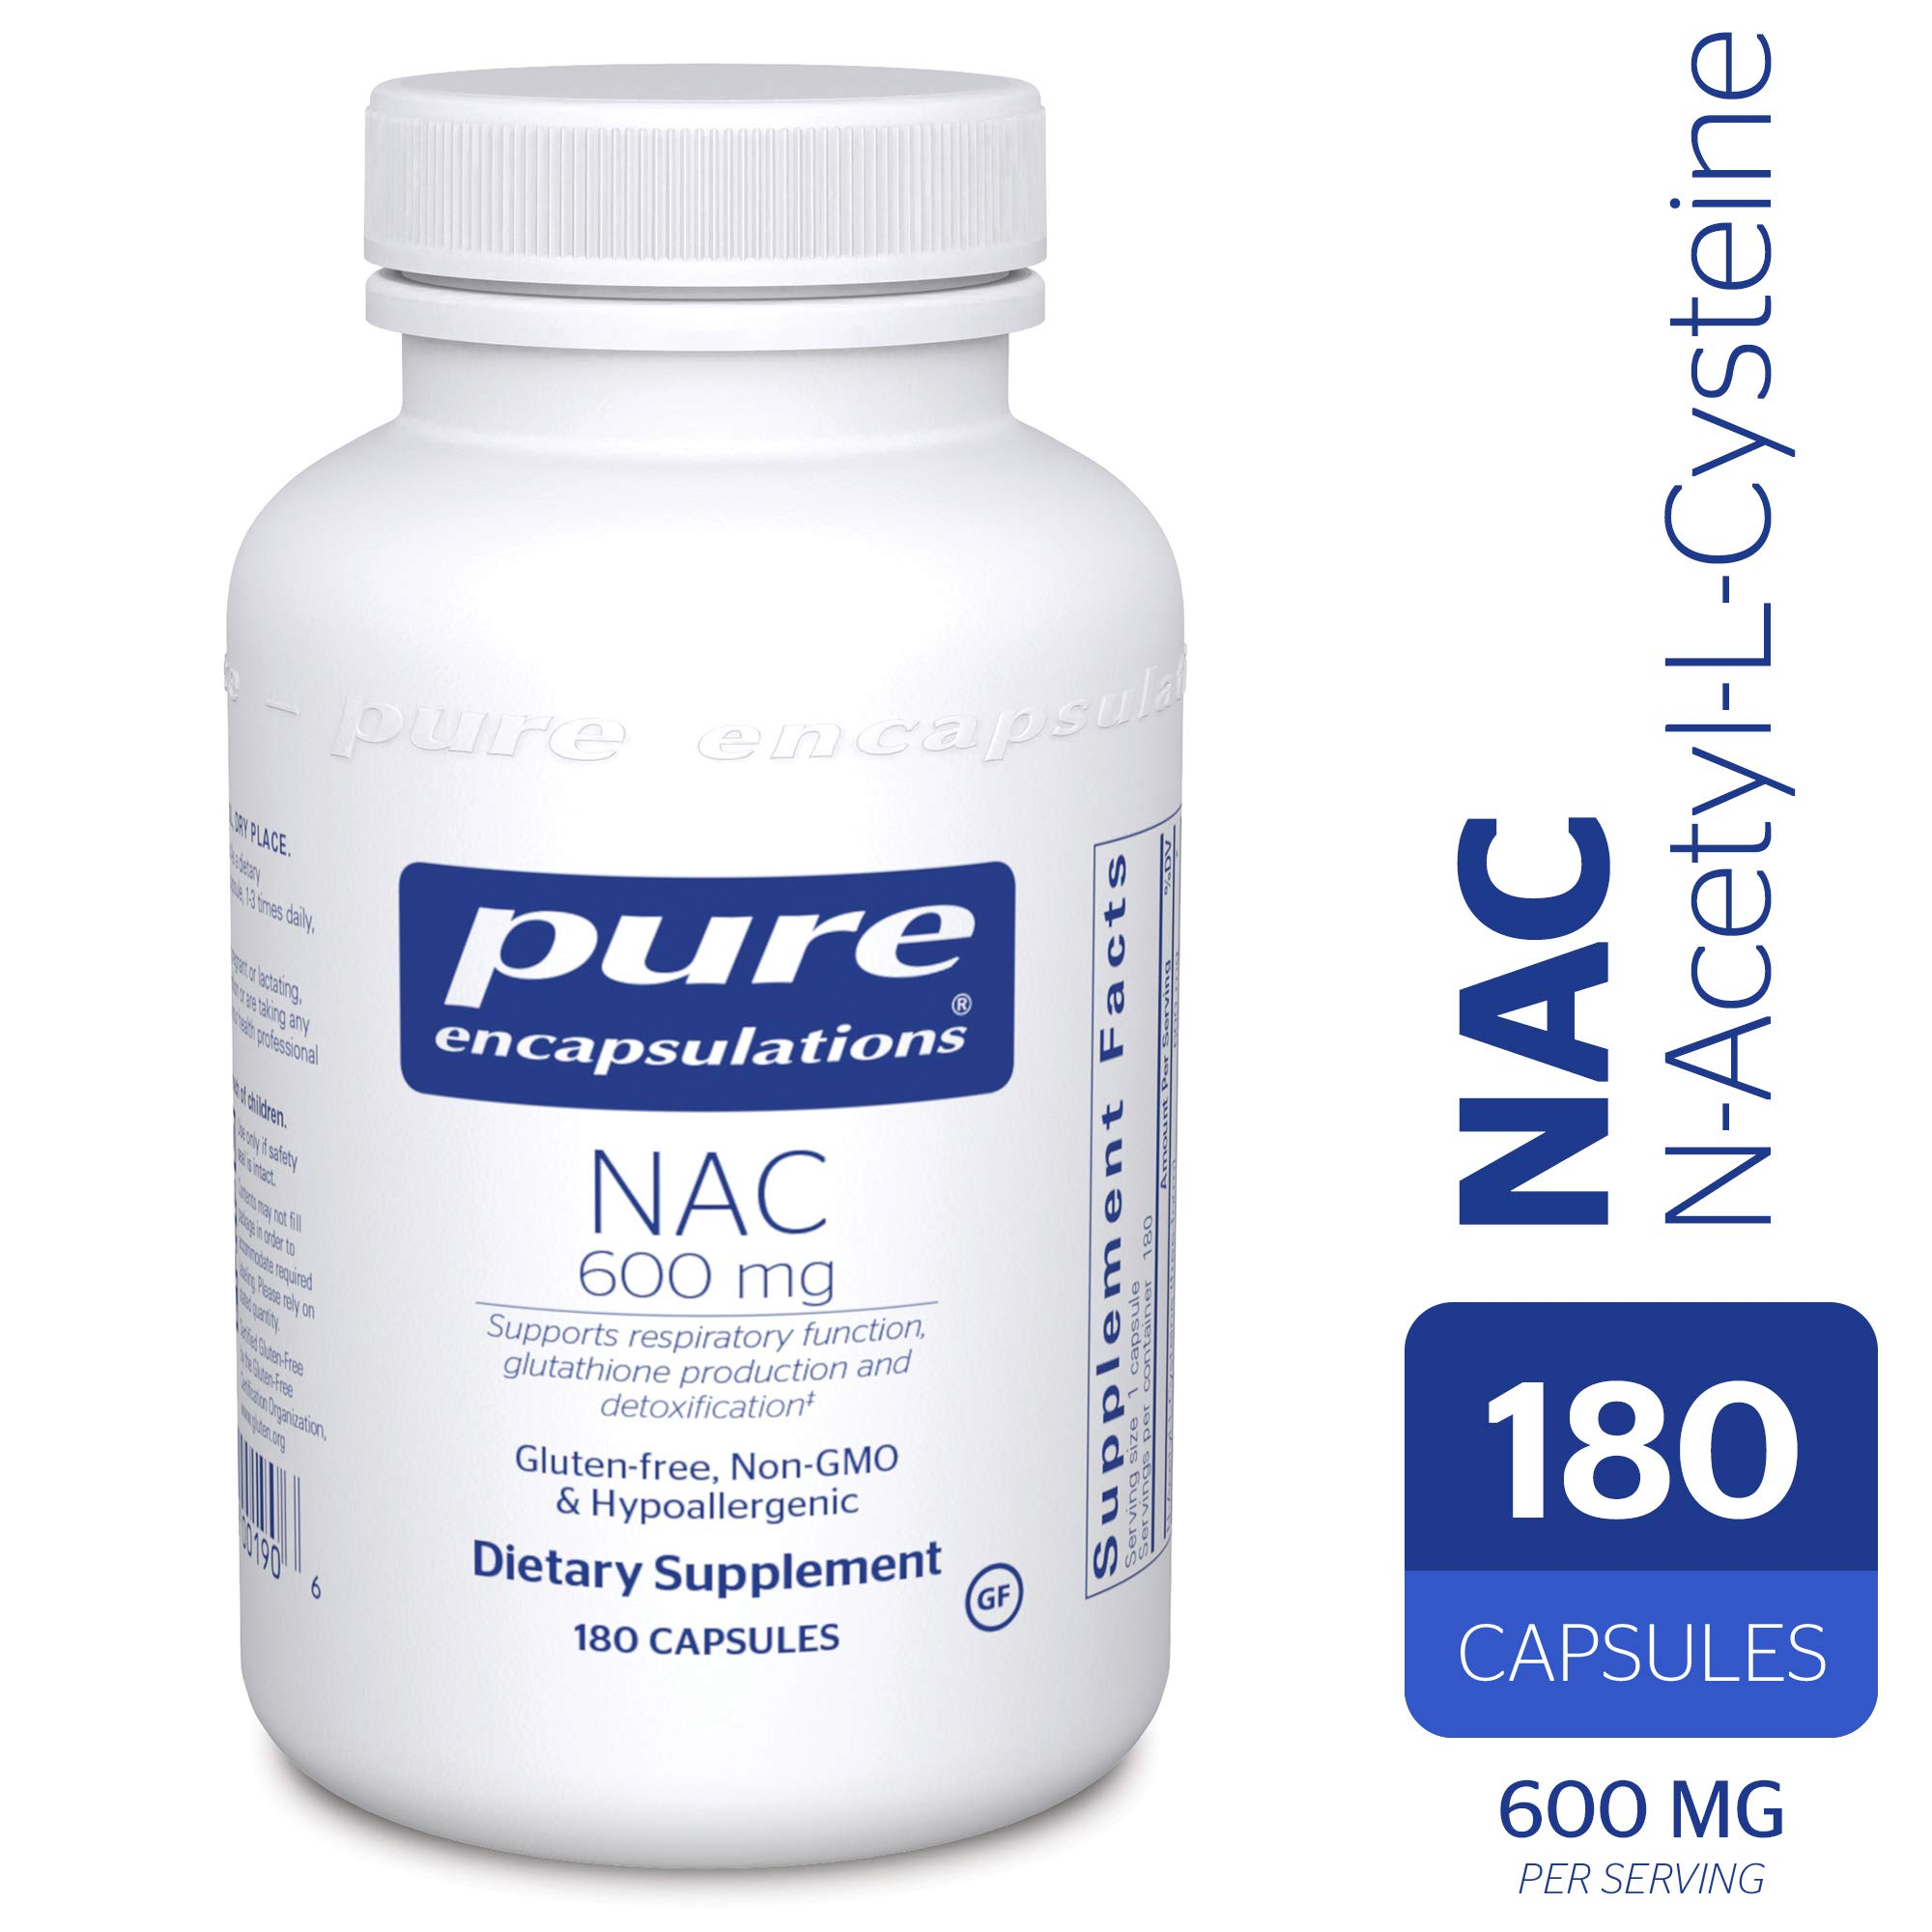 Pure Encapsulations - NAC (N-Acetyl-L-Cysteine) 600 mg - Amino Acids to Support Antioxidant Defense and Healthy Lung Tissue - 180 Capsules